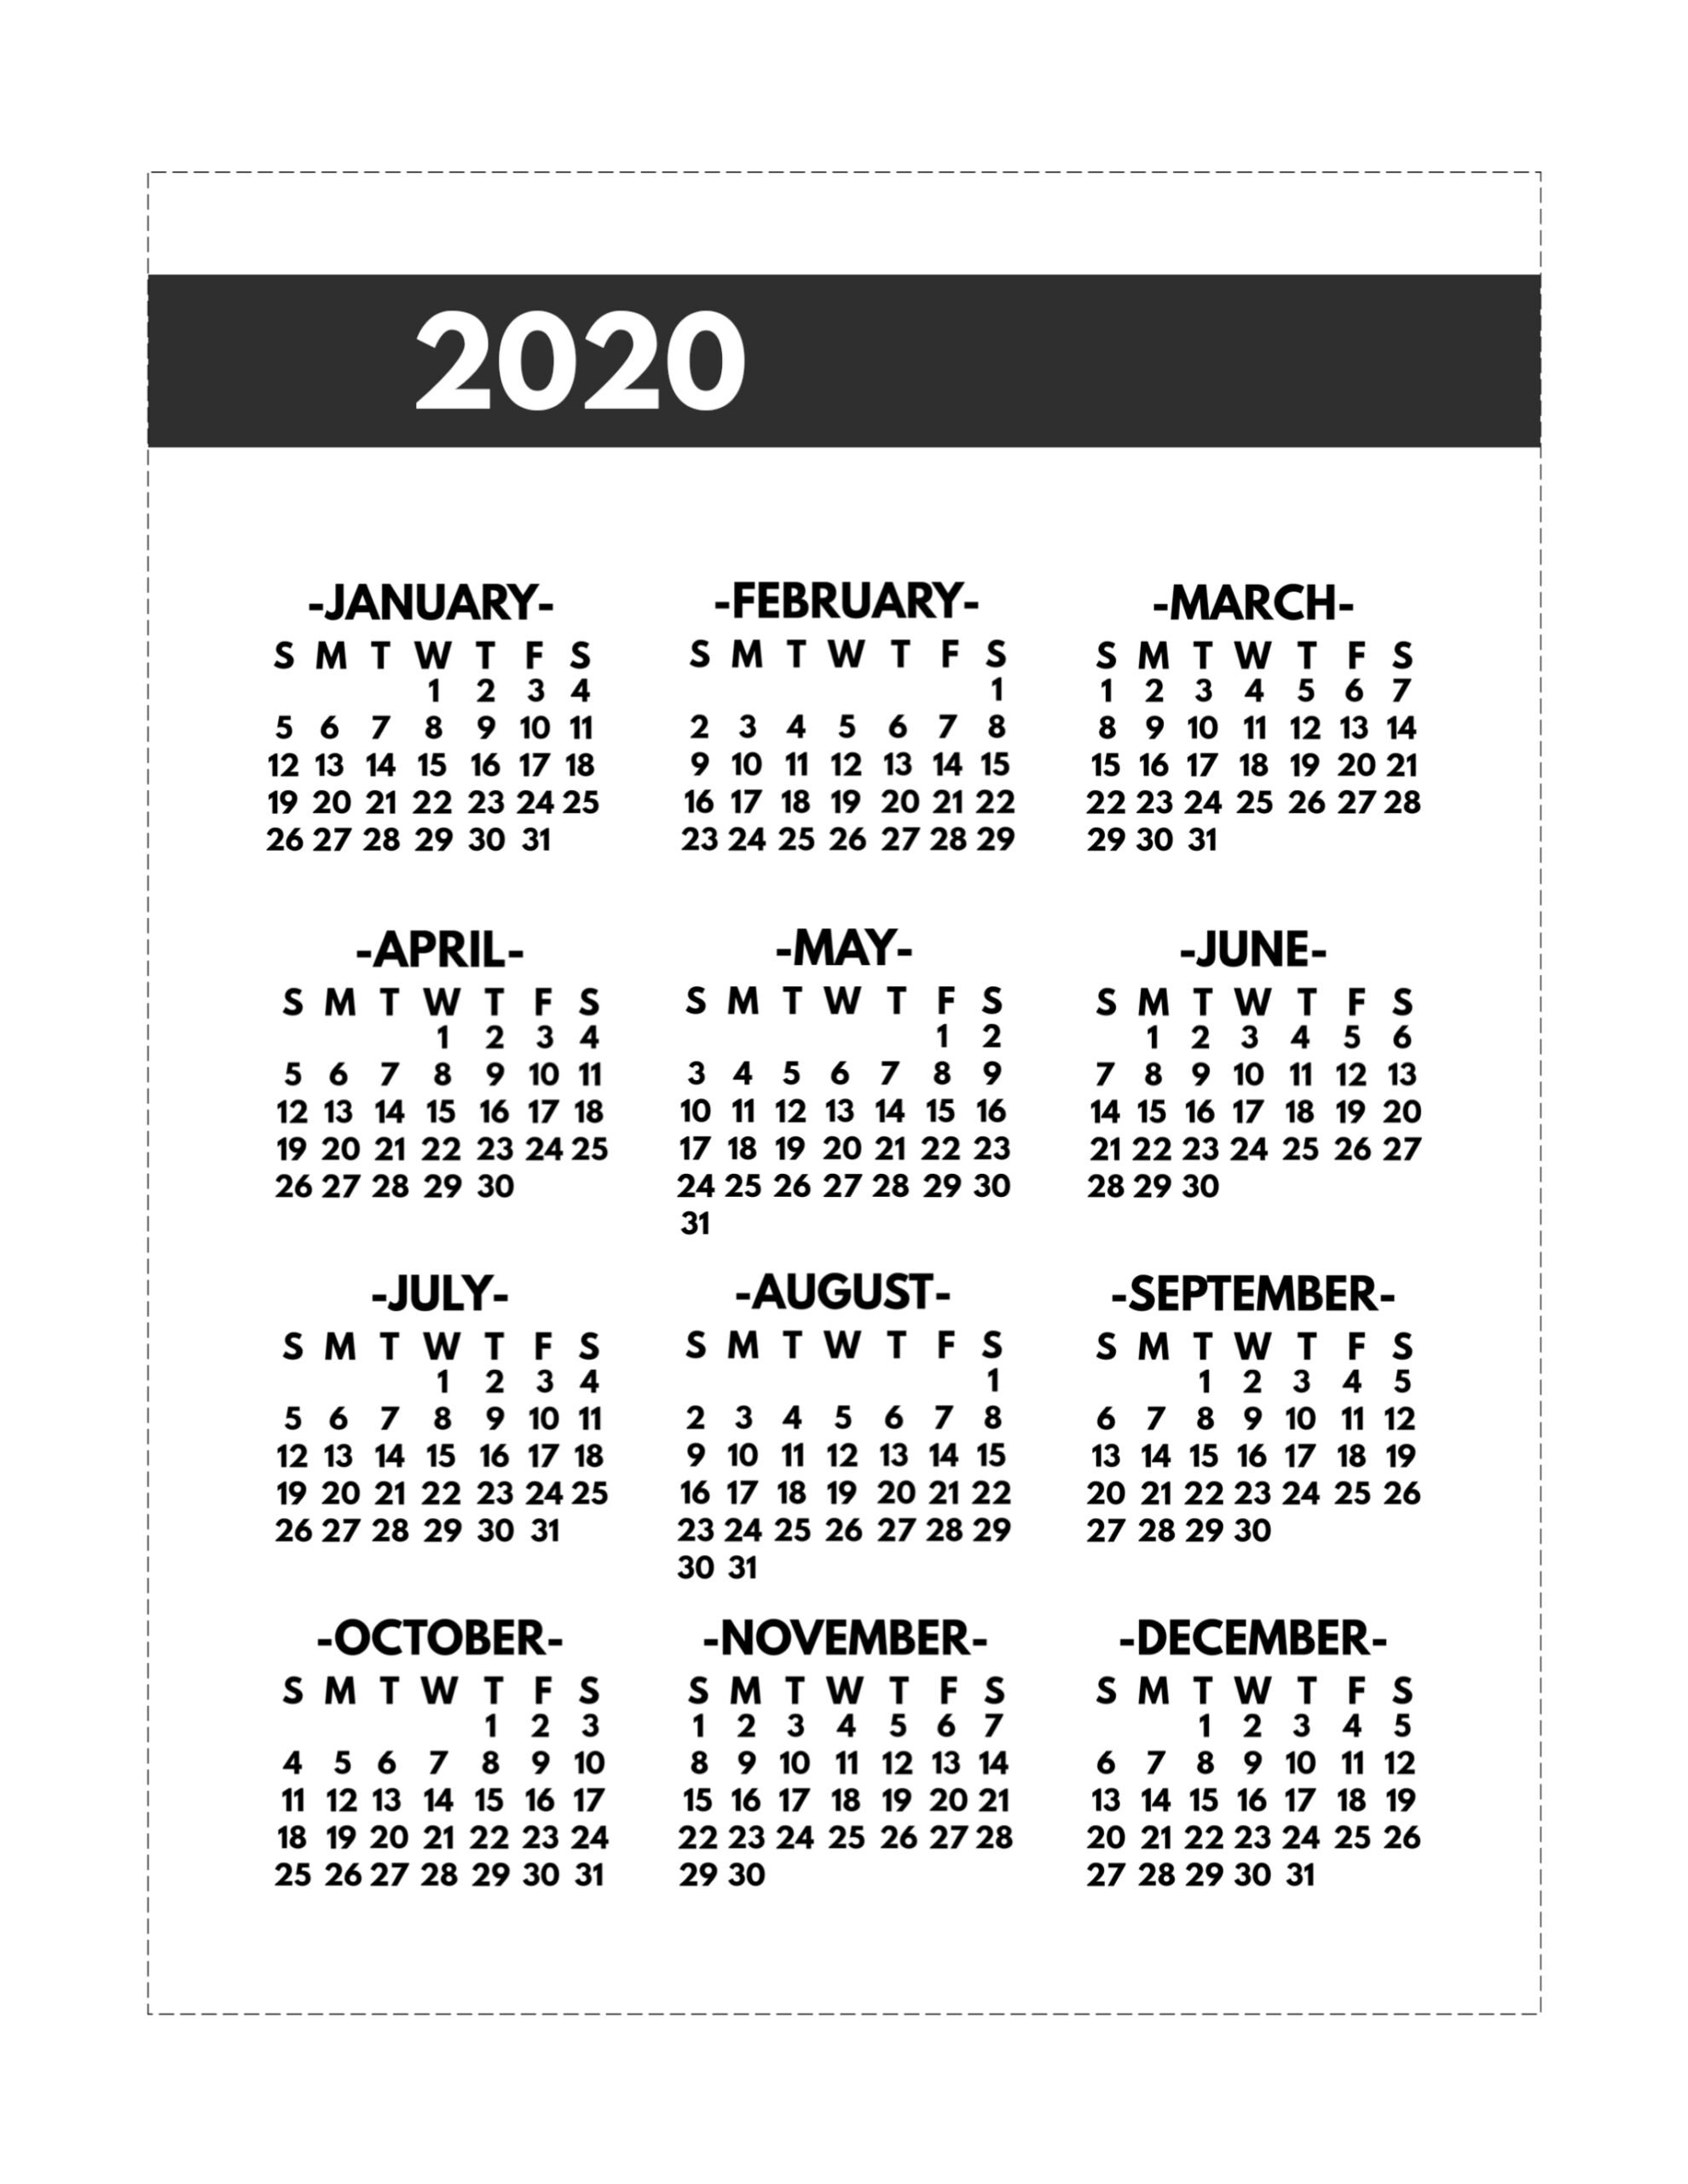 2020 Printable One Page Year At A Glance Calendar - Paper pertaining to 2020 Year At A Glance Calendar Template